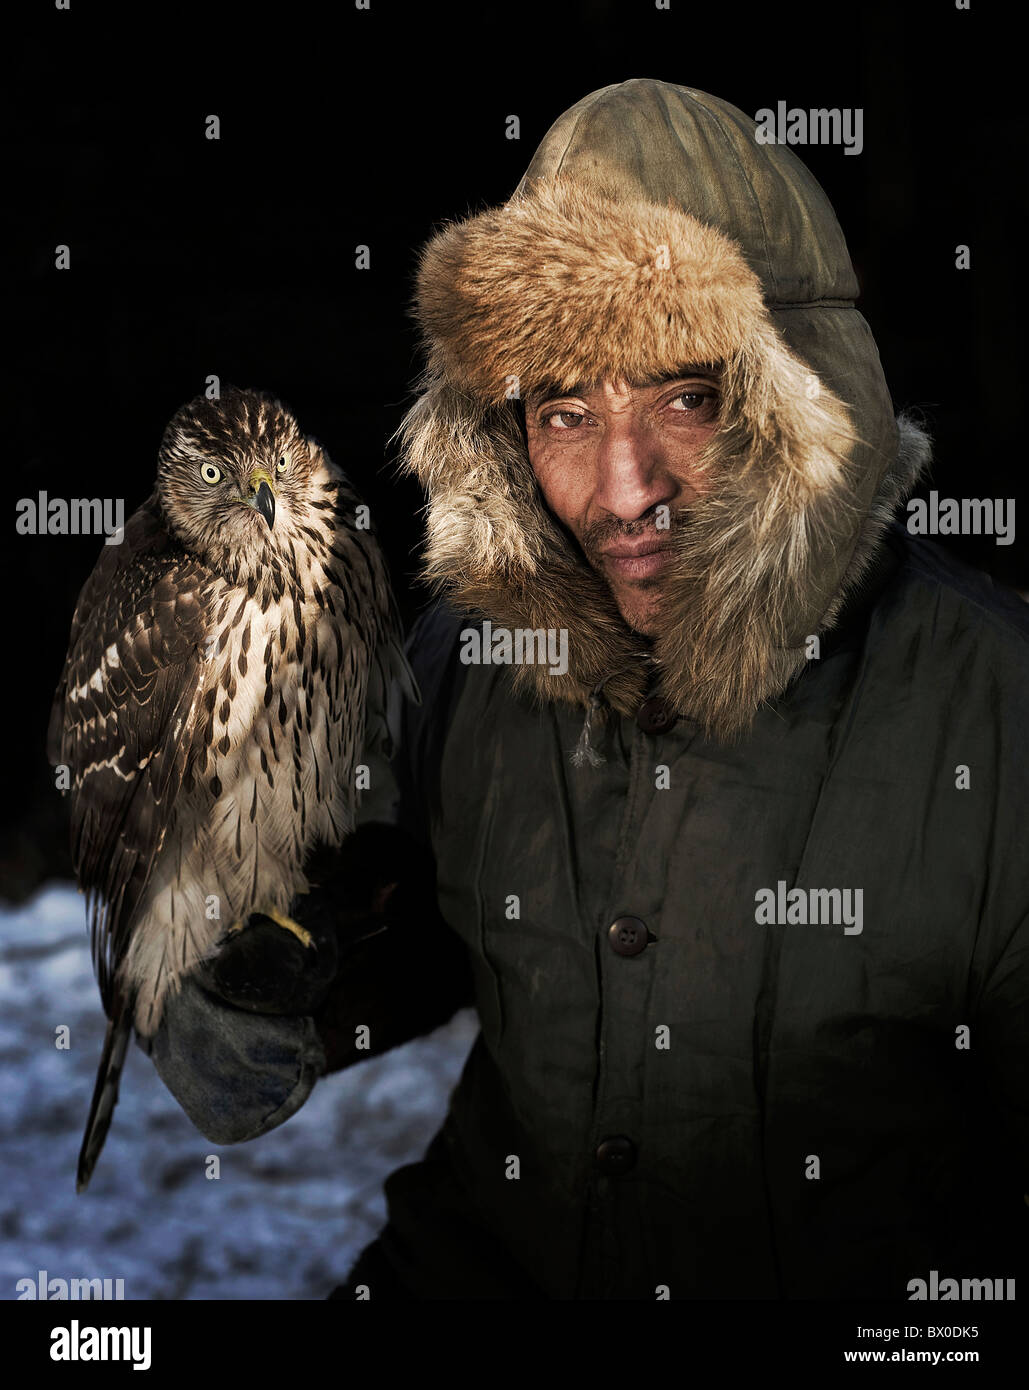 manchurian-hunter-with-his-gyrfalcon-eag